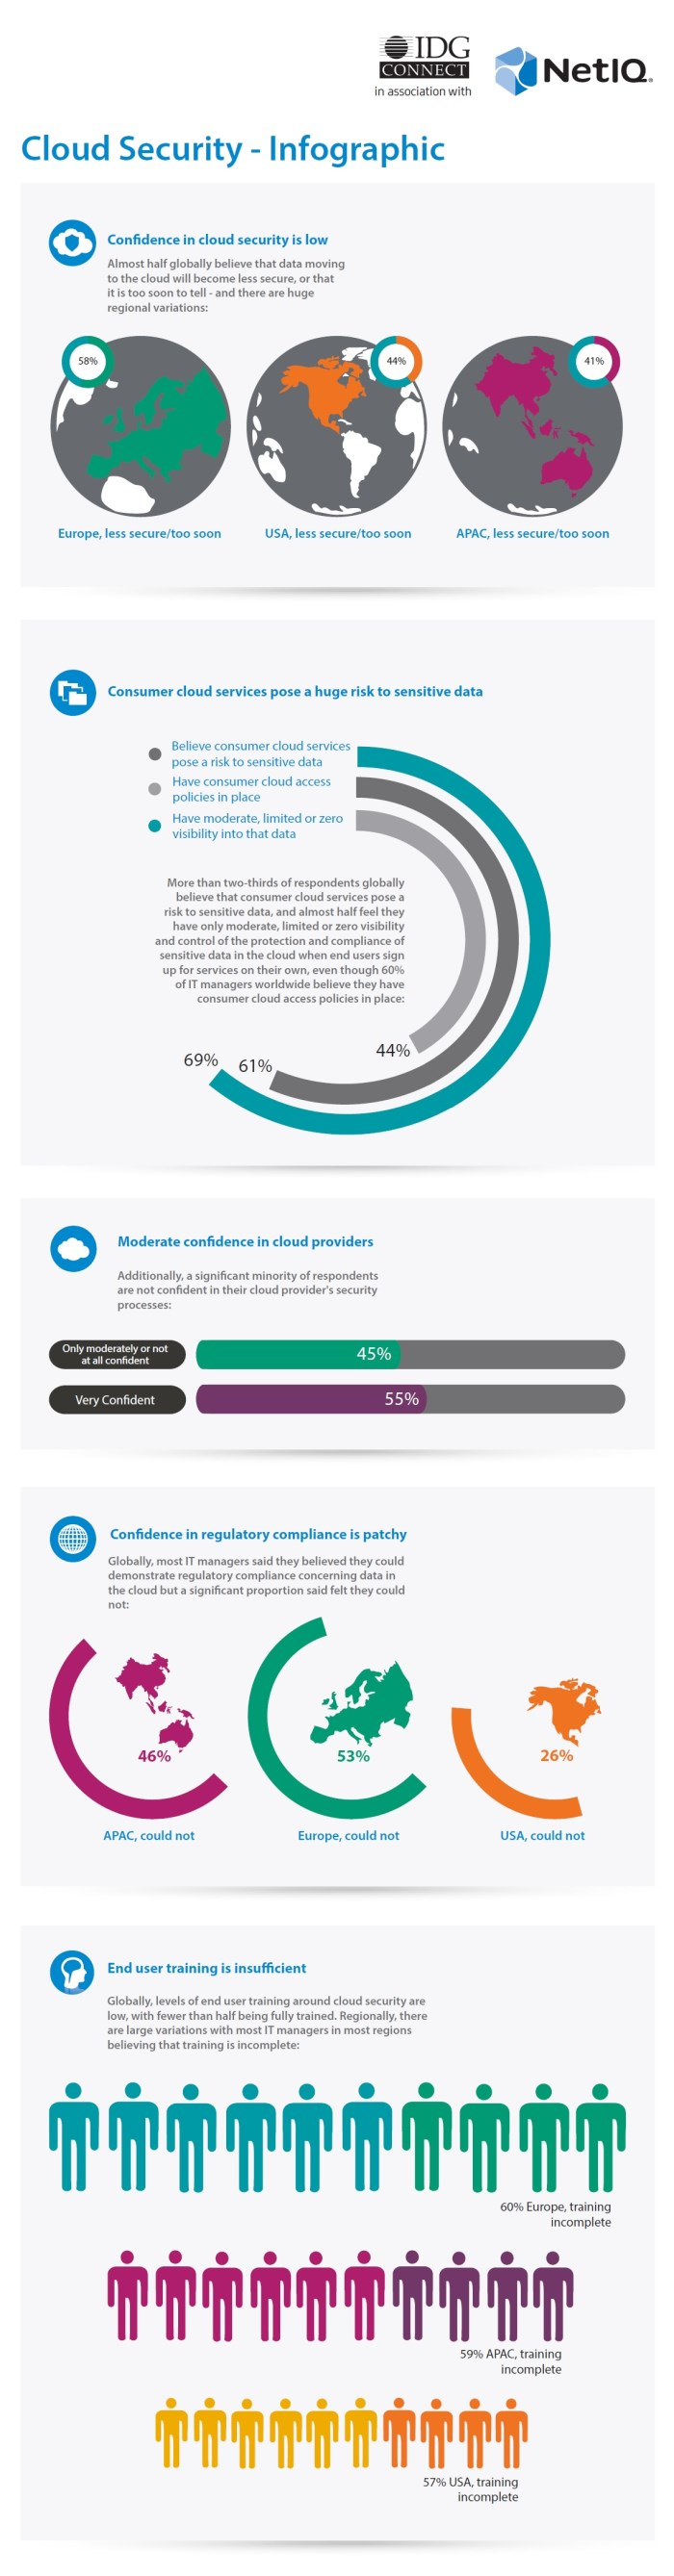 Infographie NetIQ IDC CloudSecuritySurvey